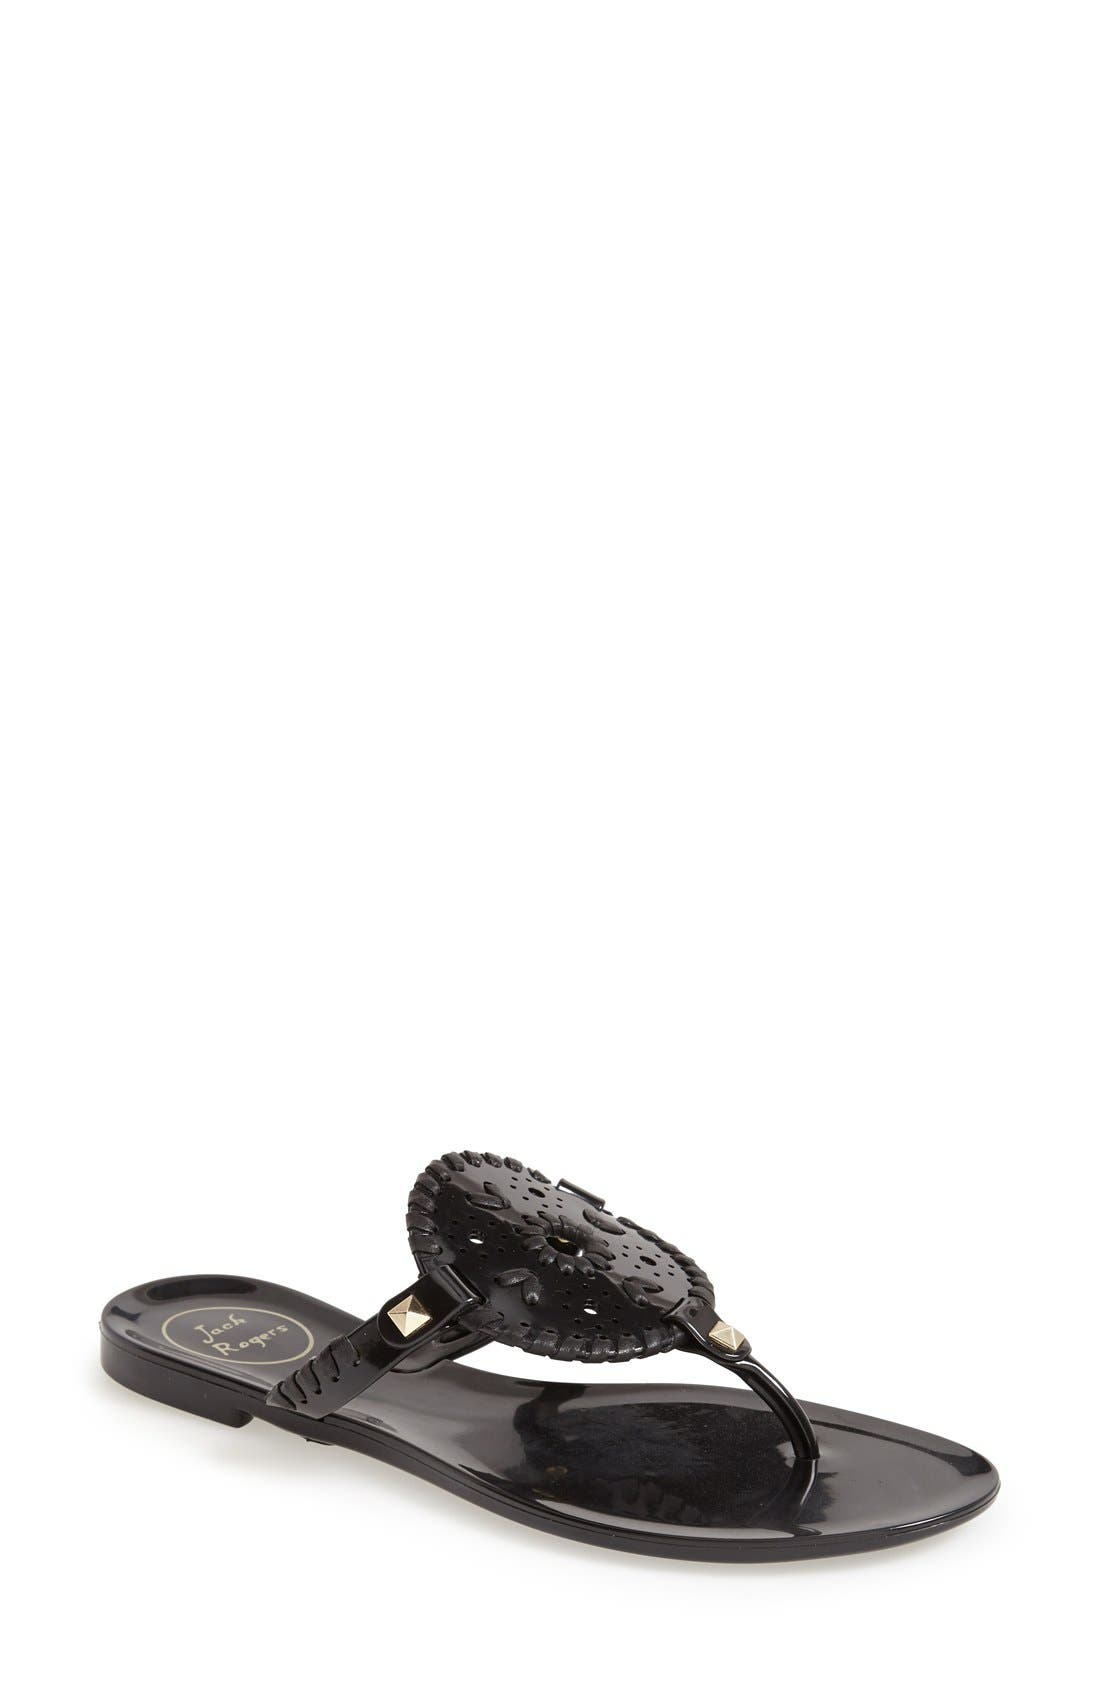 Georgica Jelly Thong Sandals in Black